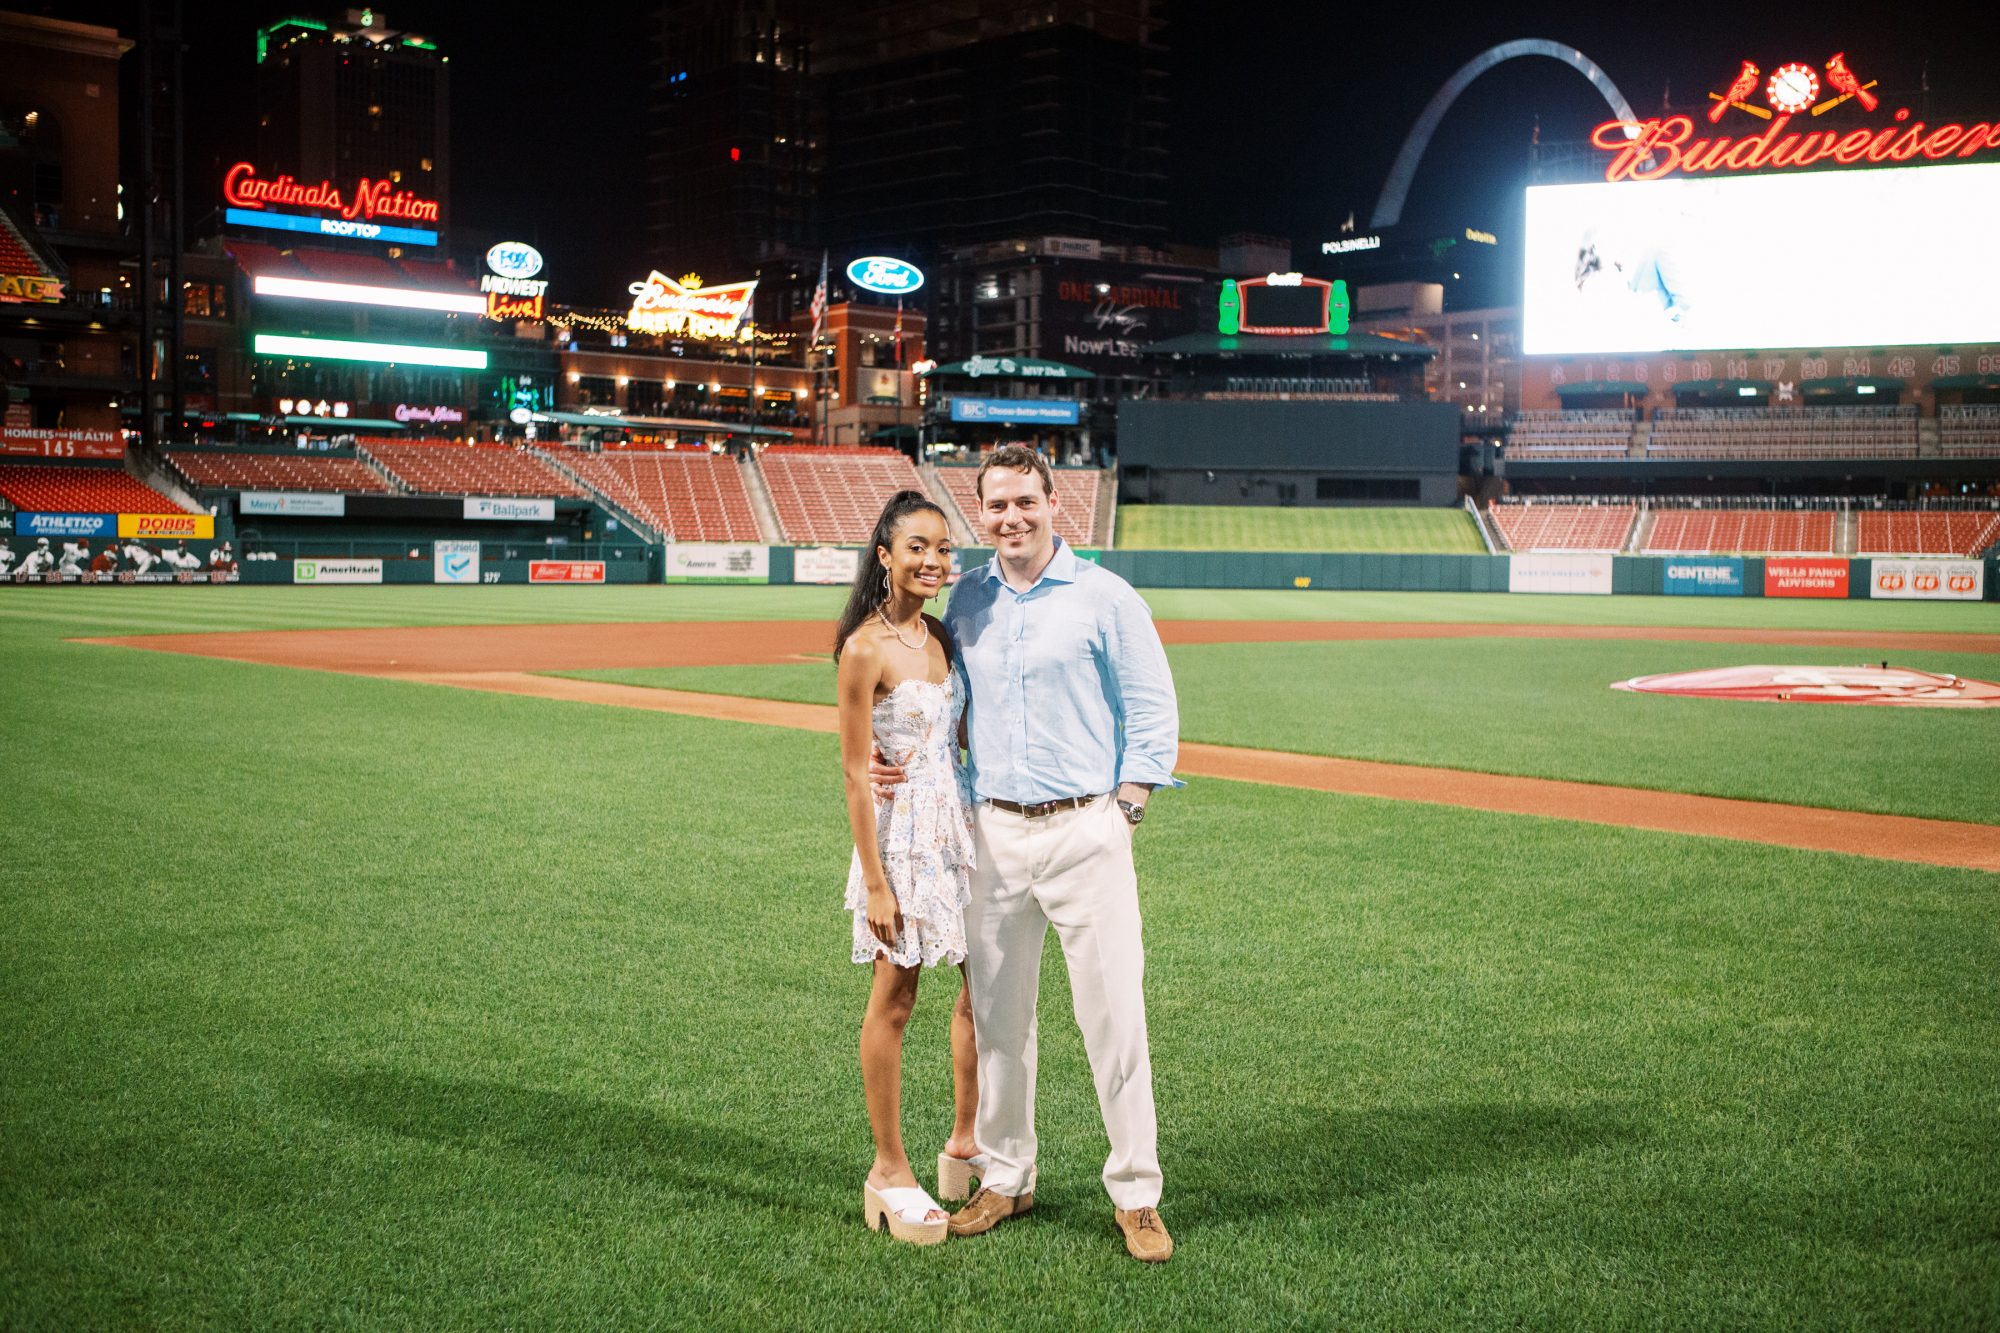 An Evening at Busch Stadium